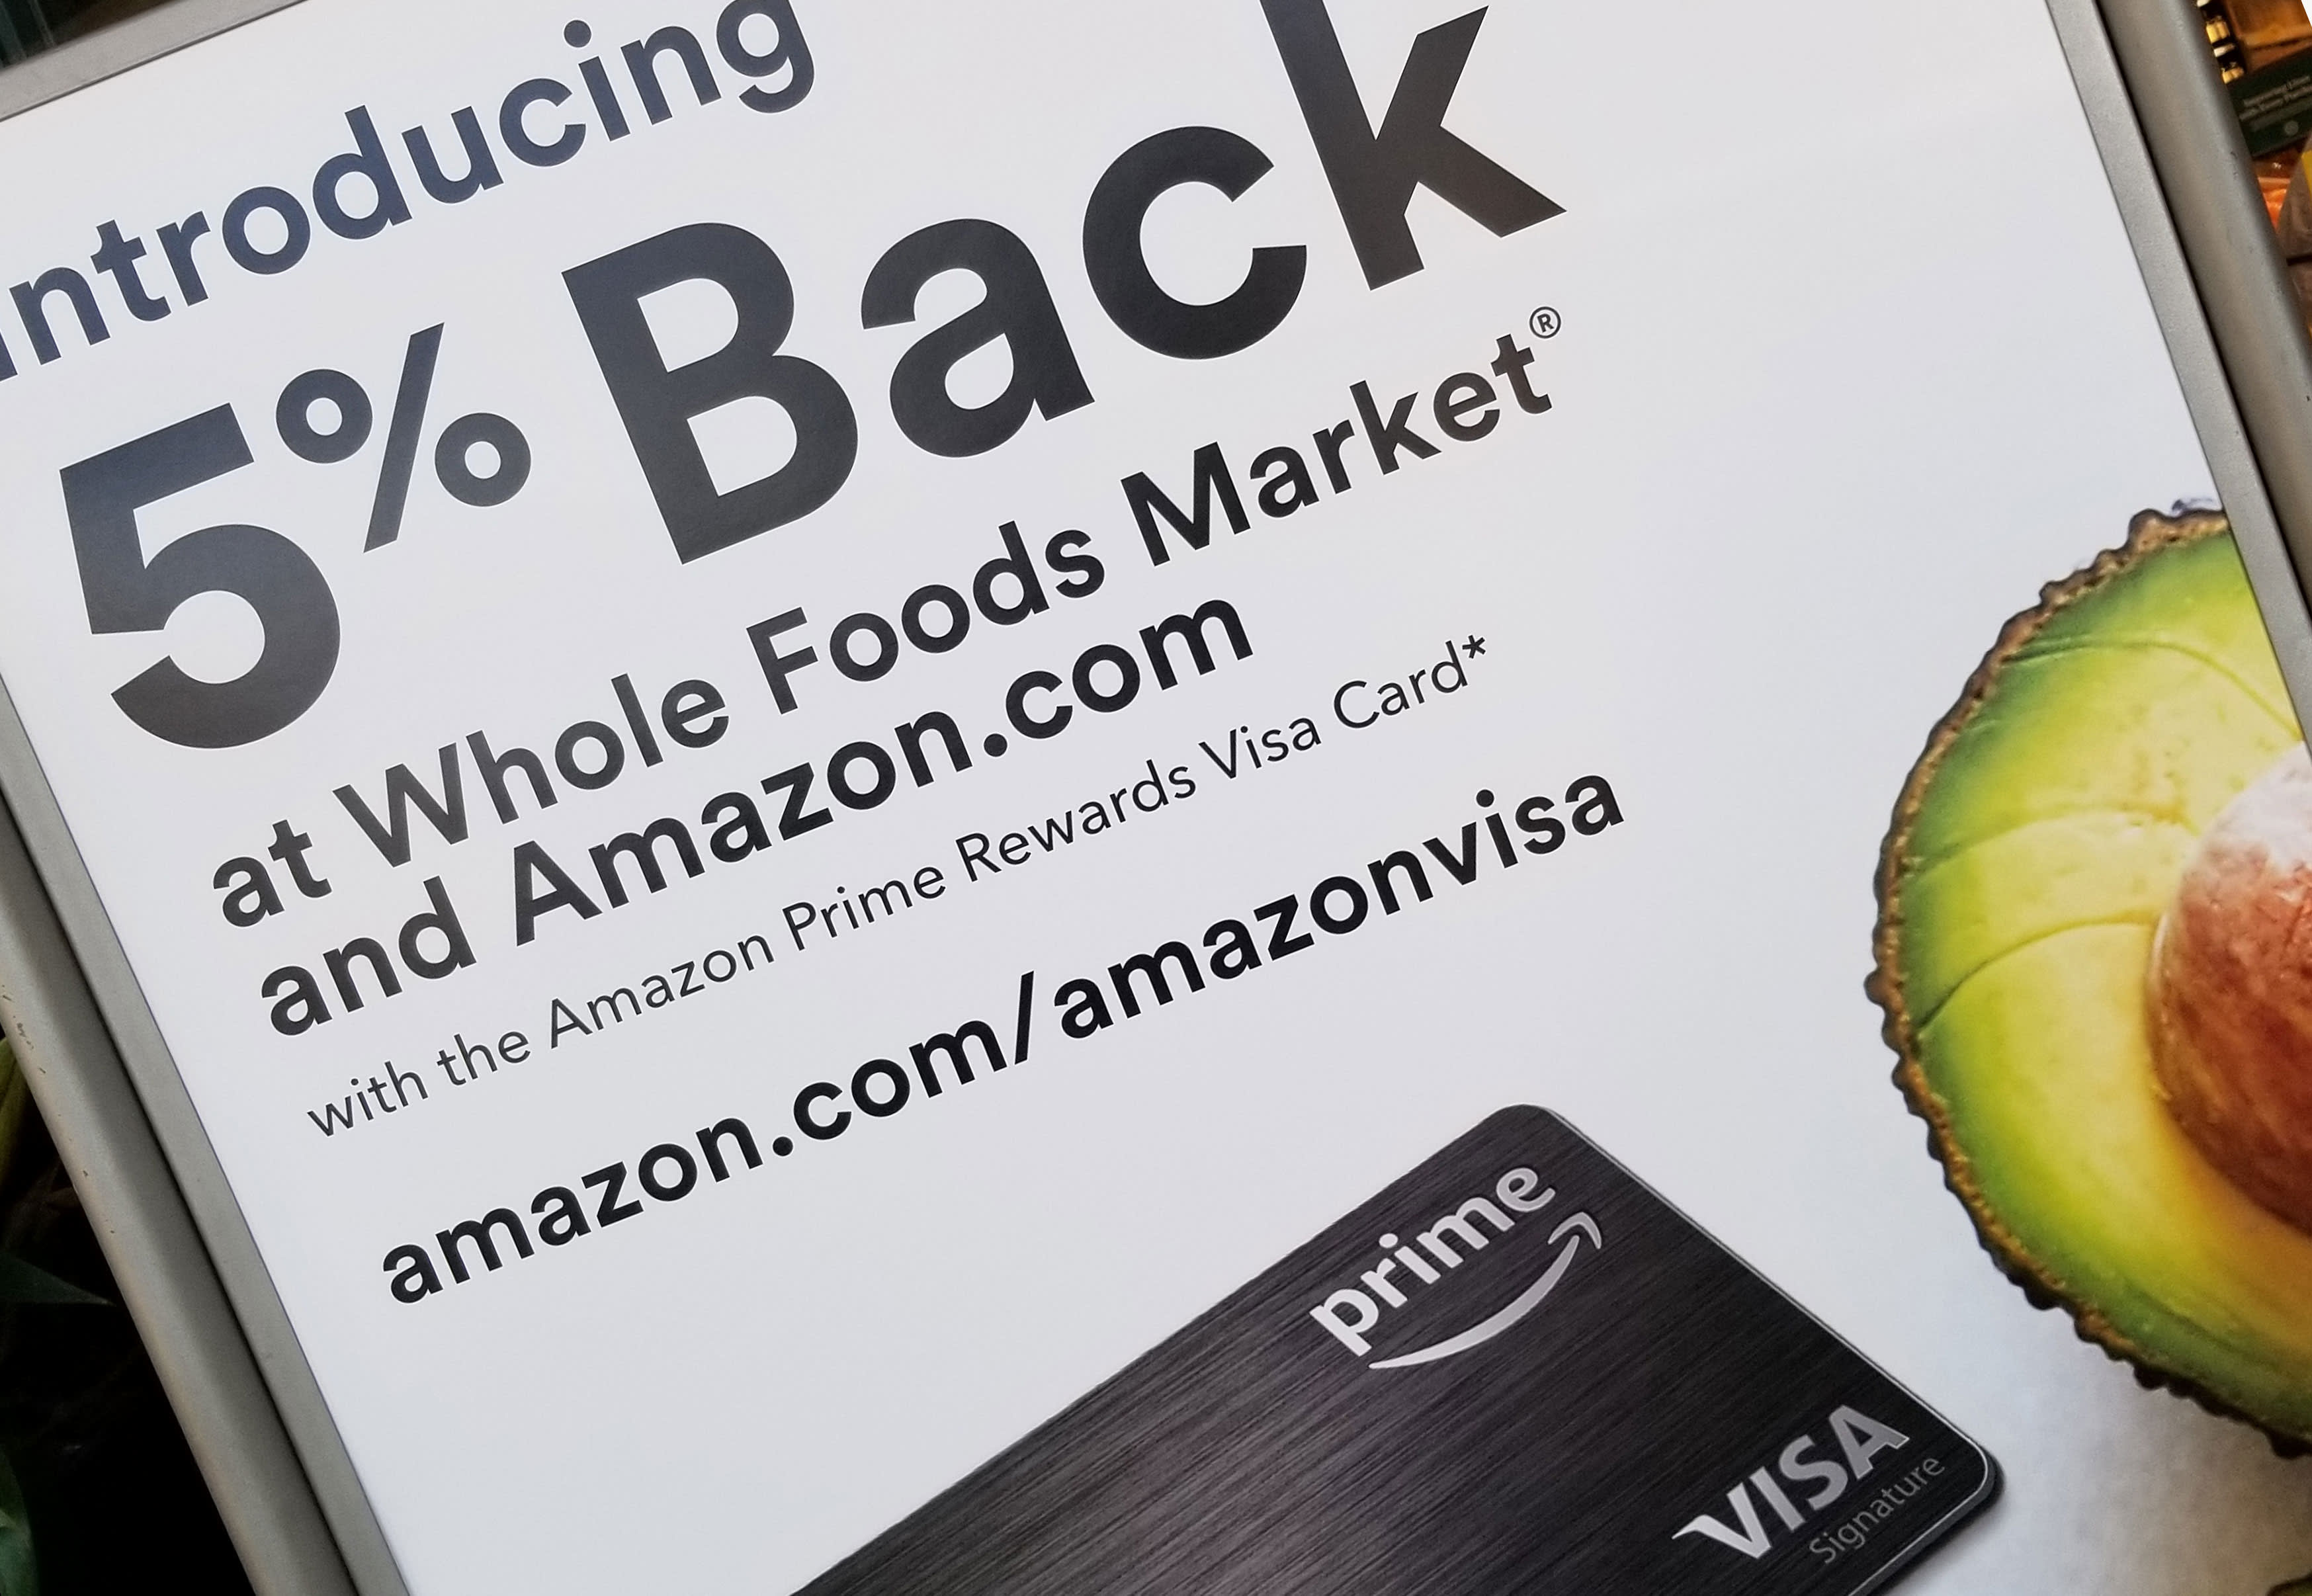 Amazon Whole Foods Amazon Plans More Prime Perks At Whole Foods Says Sources